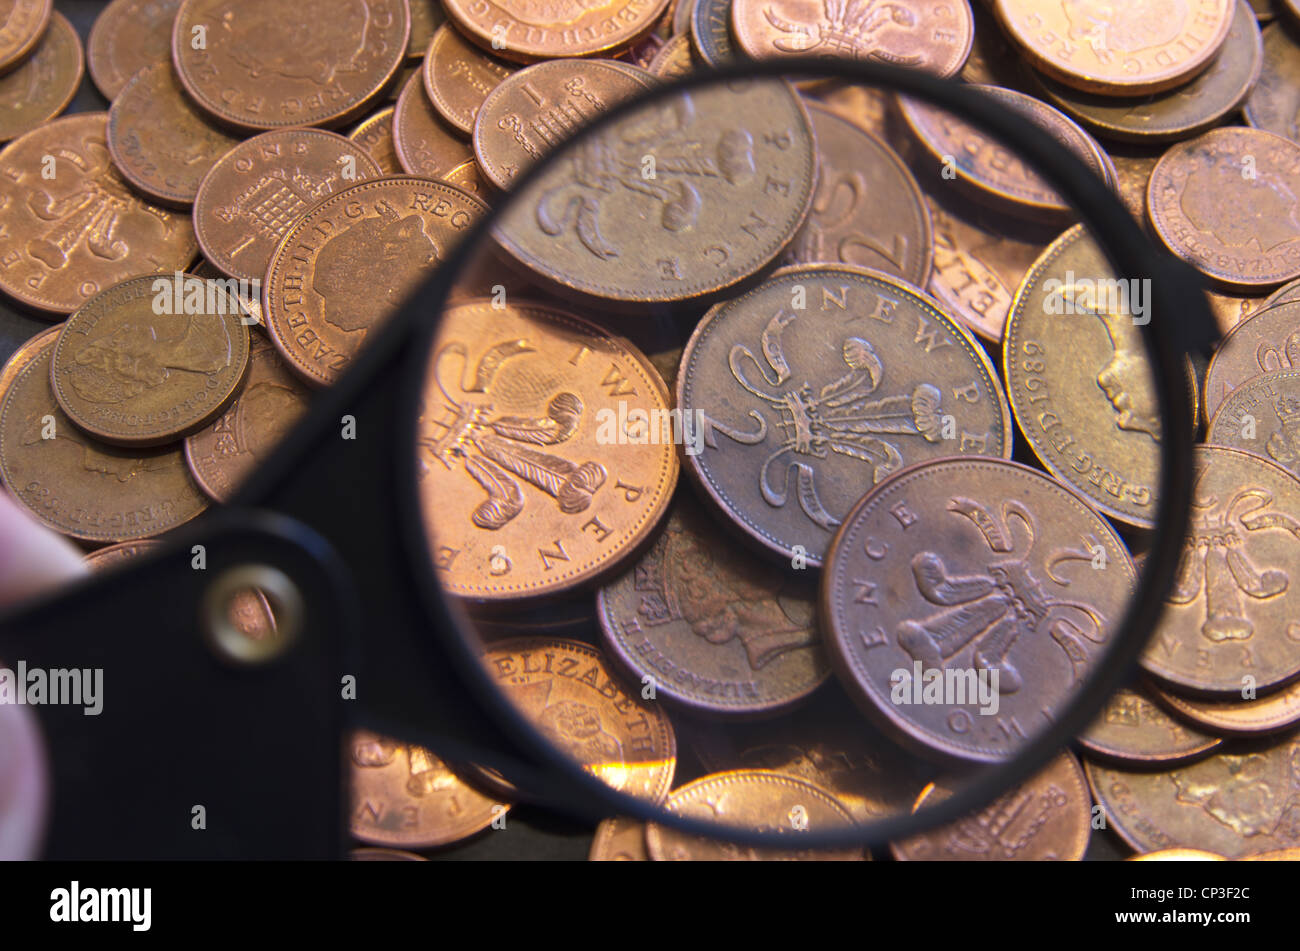 A mound of UK coins being inspected with a magnifying glass - Stock Image